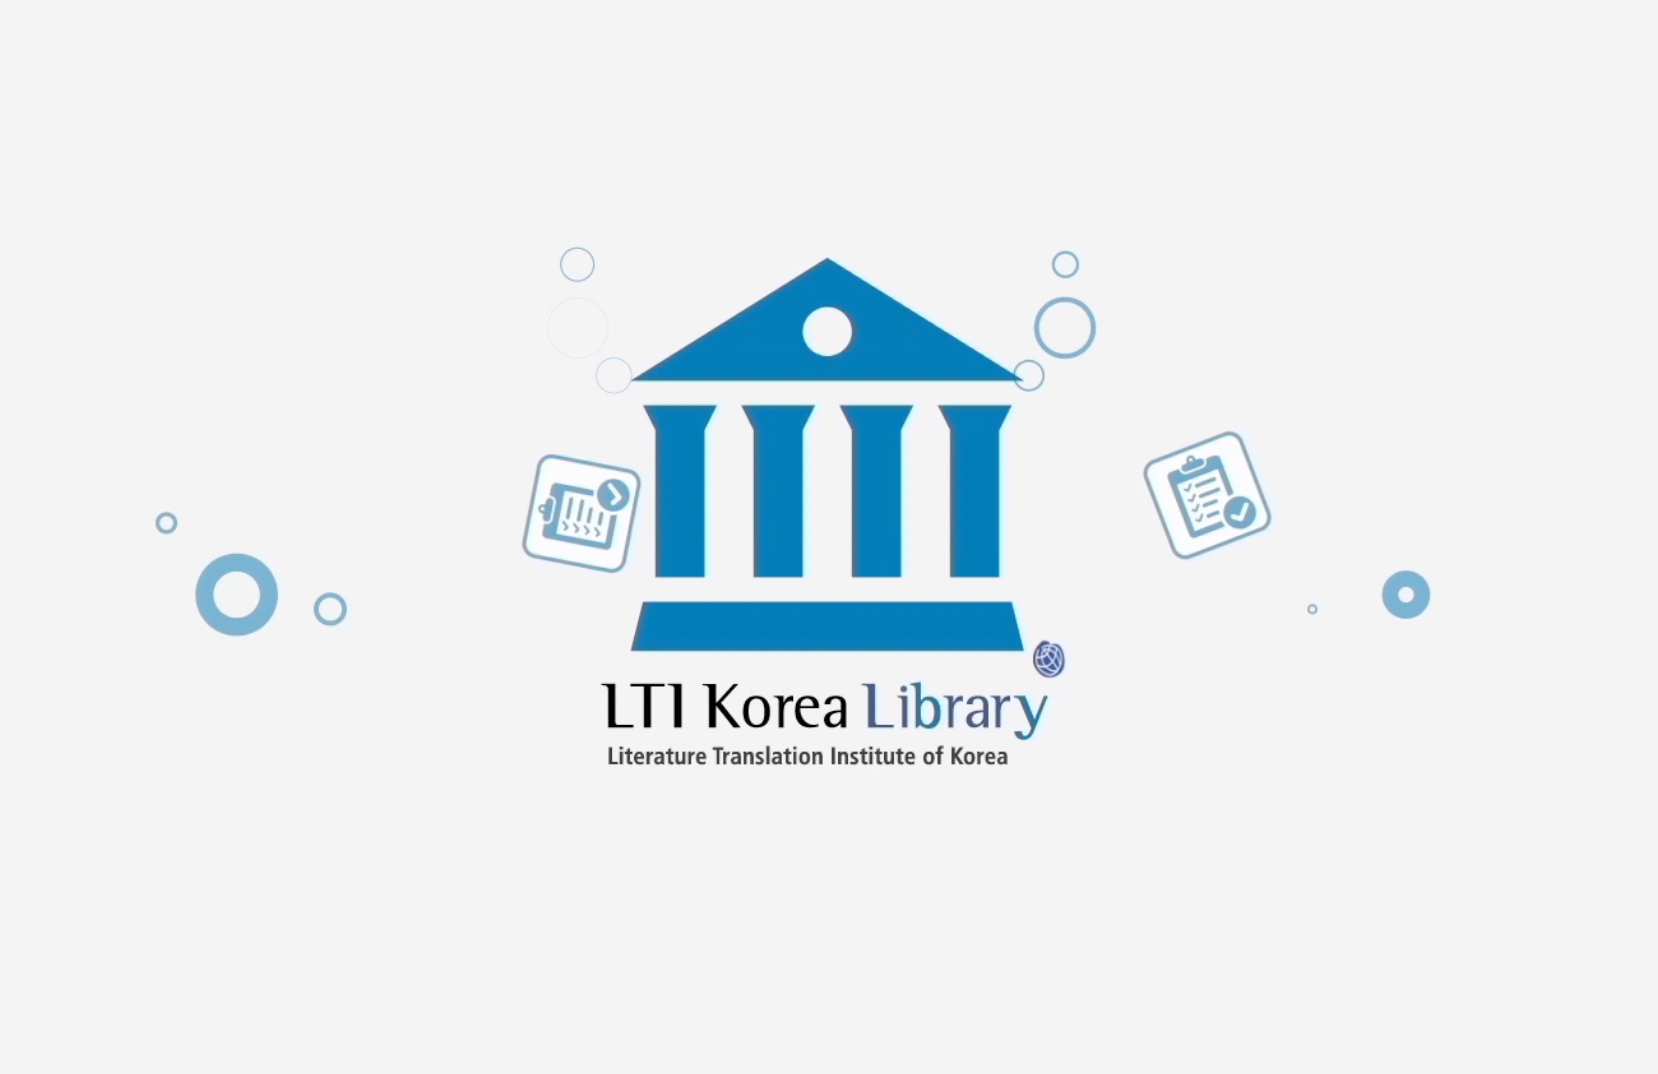 [Video] Introduction to Digital Library of Korean Literature